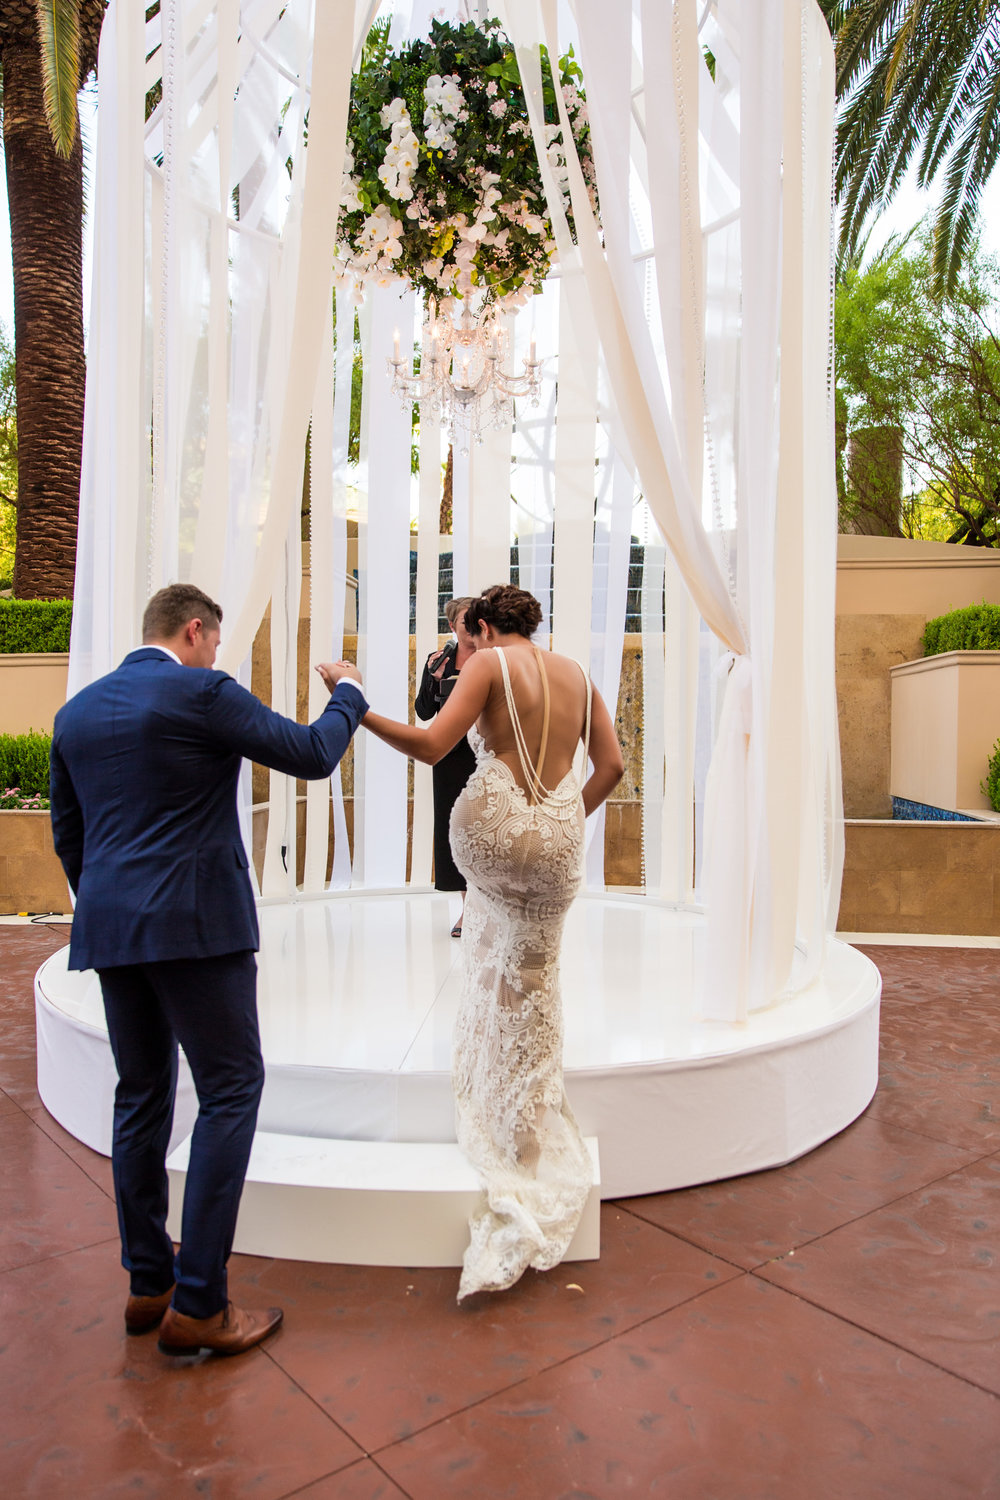 The bride and groom walked into the ceremony together.  Wedding Planning by  Andrea Eppolito Events   ·  Photography by  Shandro Photo    ·  Wedding Venue  Four Seasons Las Vegas   ·  Floral and Decor by  Destination by Design   ·  Cake by  Four Seasons Las Vegas   ·  Chandeliers and Lighting by  LED Unplugged   ·  Dress by  Berta